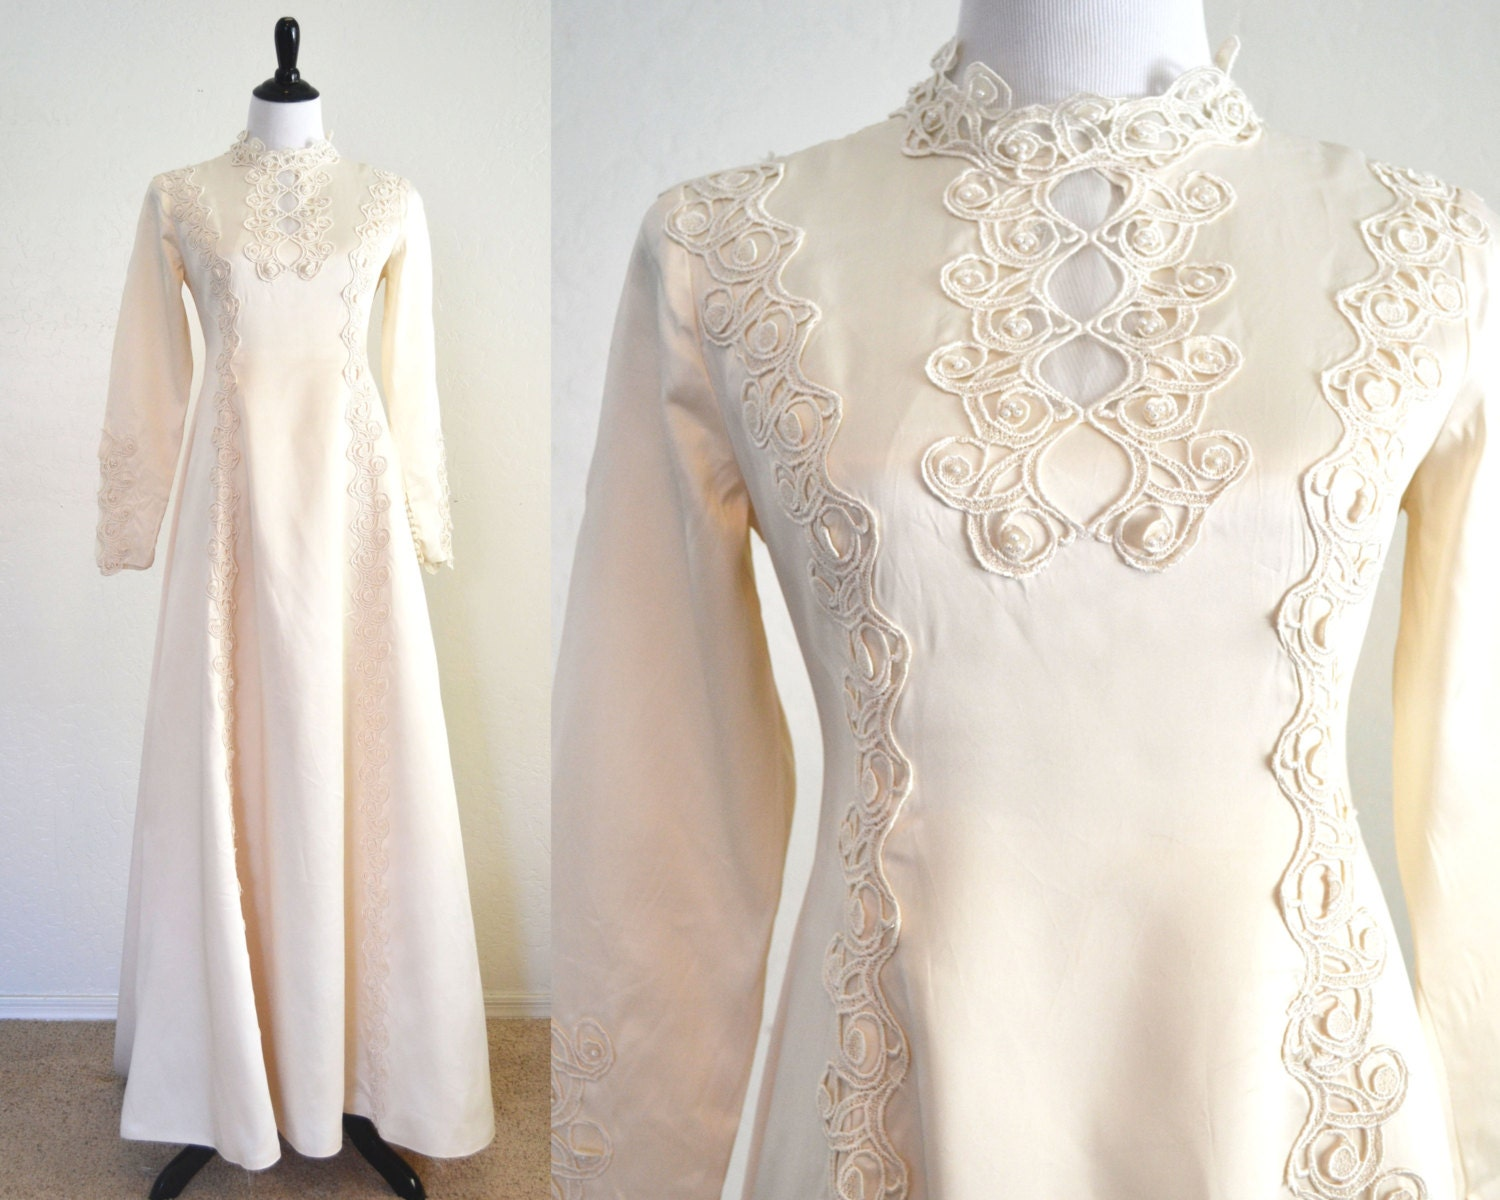 1960s Wedding Dress Art Nouveau Details Boho By YellowBeeVintage